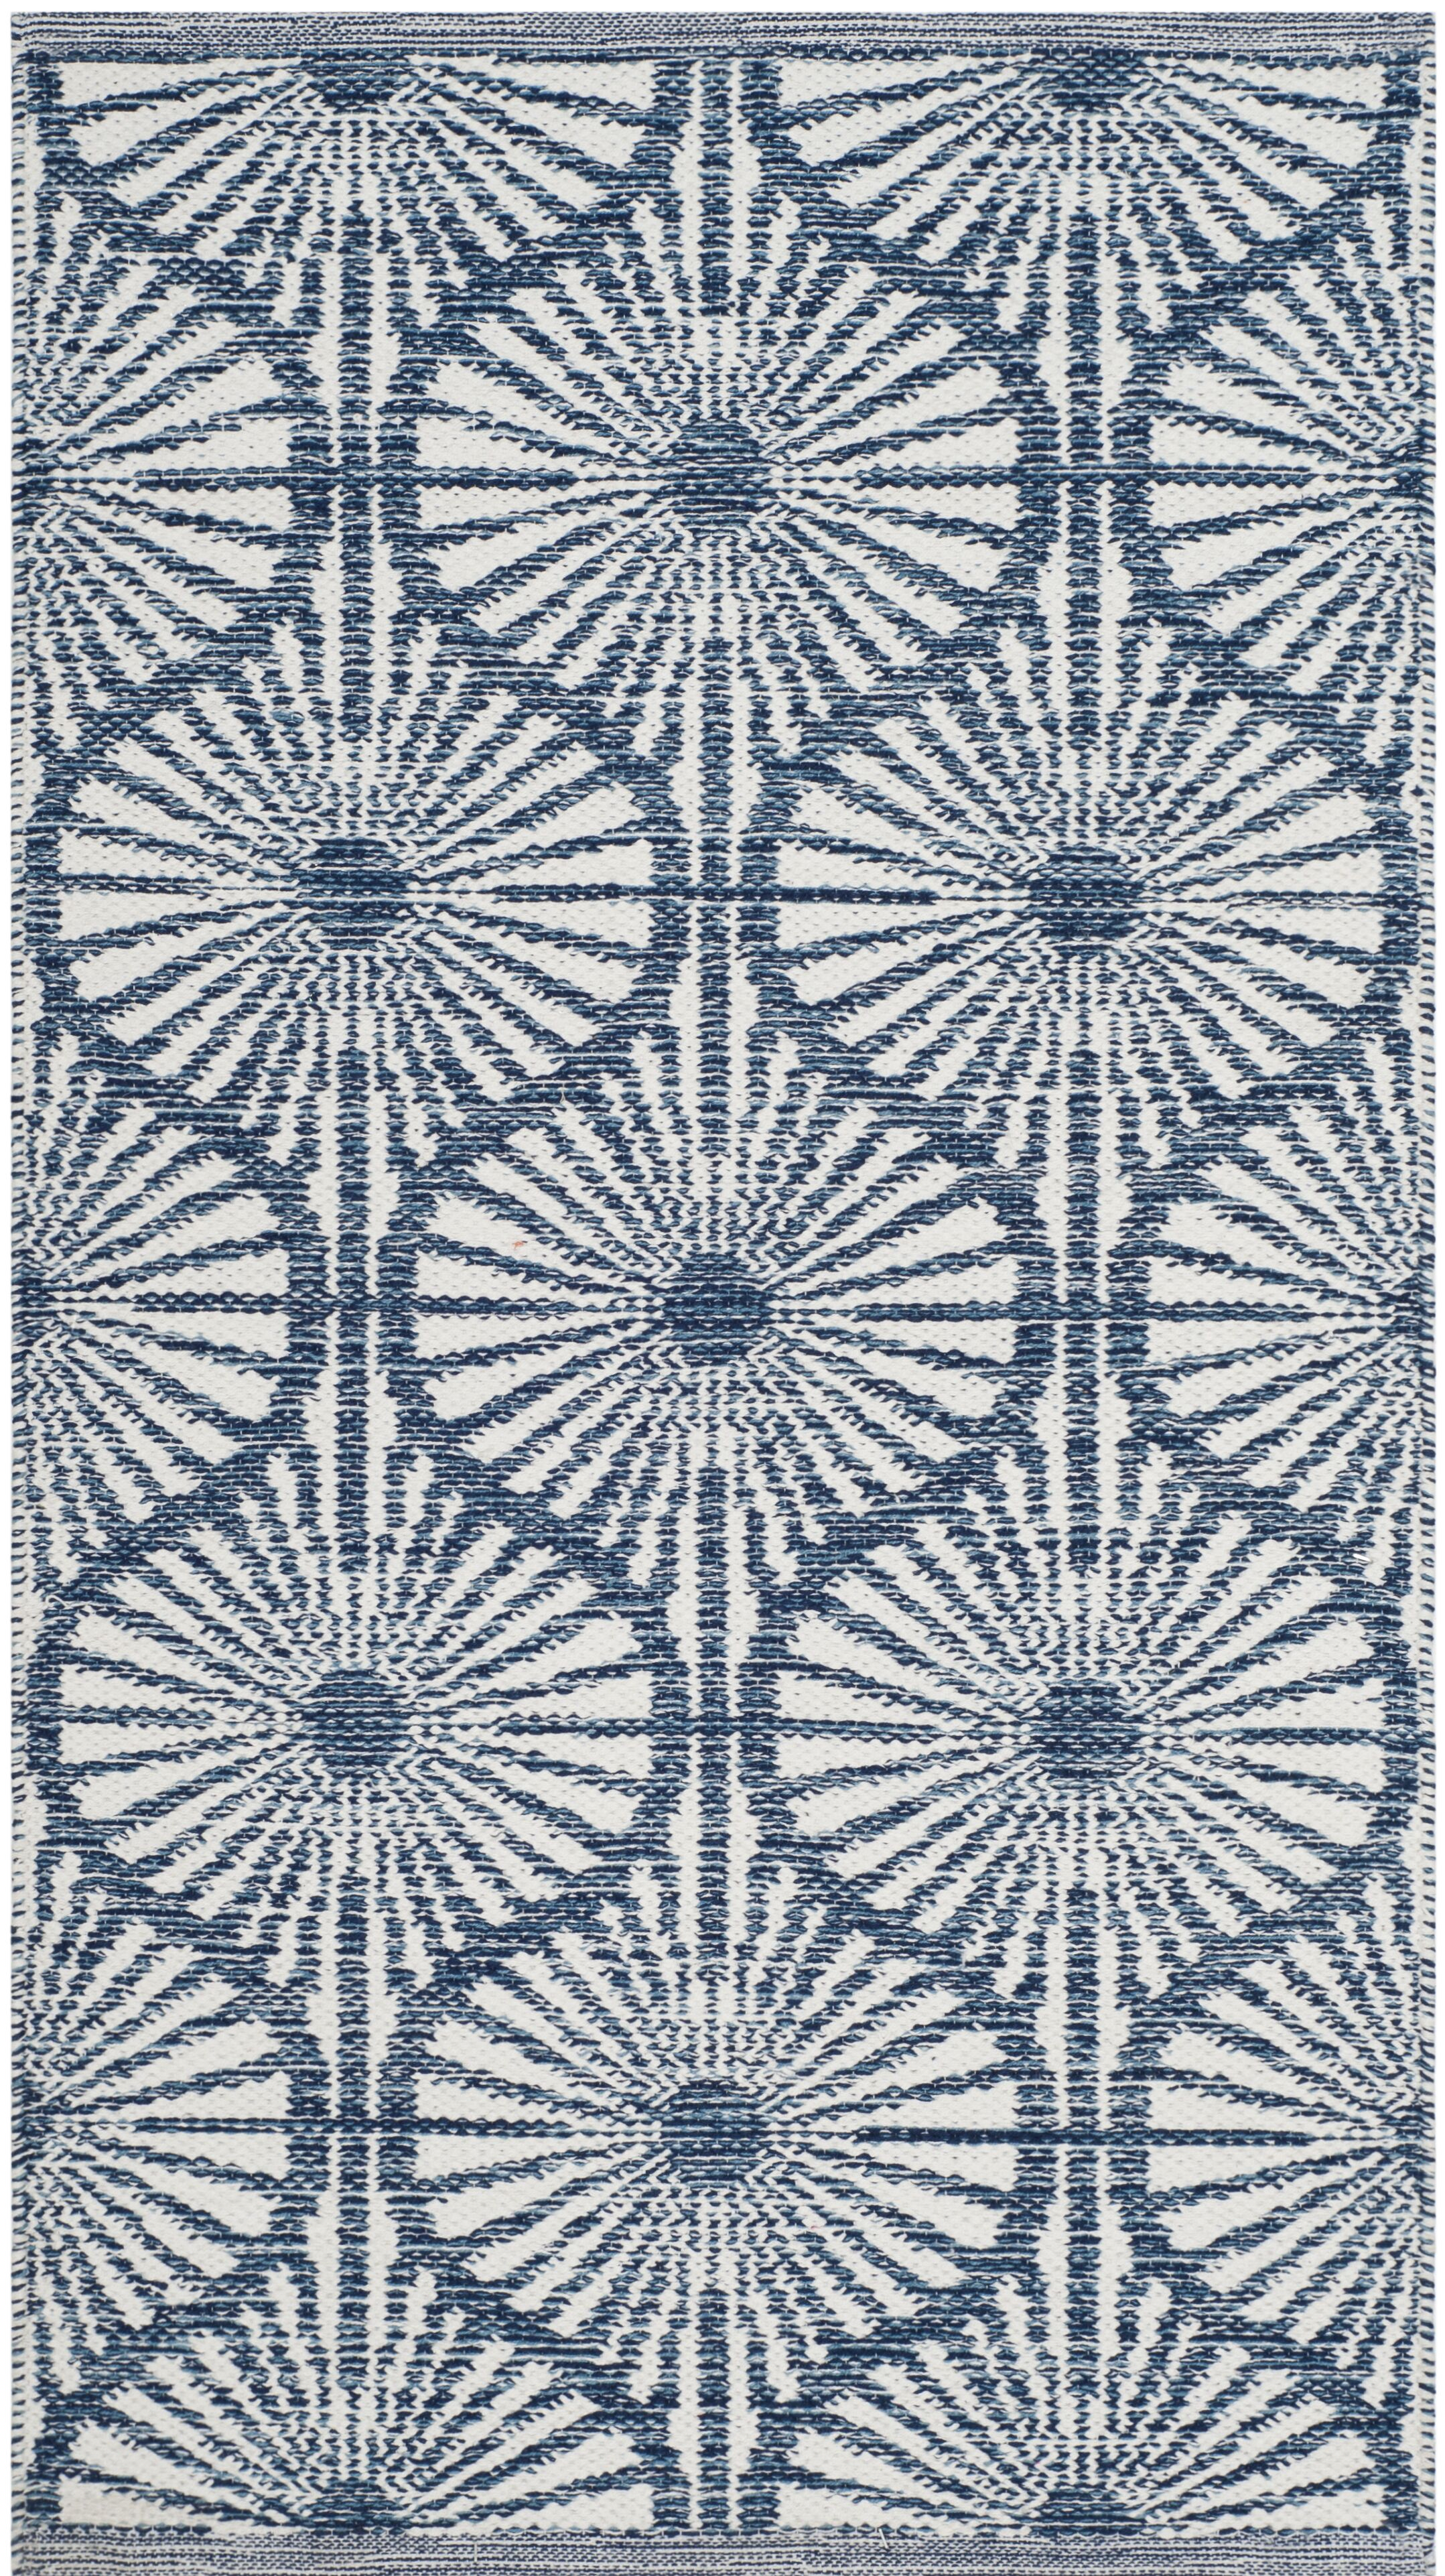 Oak Hill Hand-Woven Navy/Ivory Area Rug Rug Size: Rectangle 8' x 10'